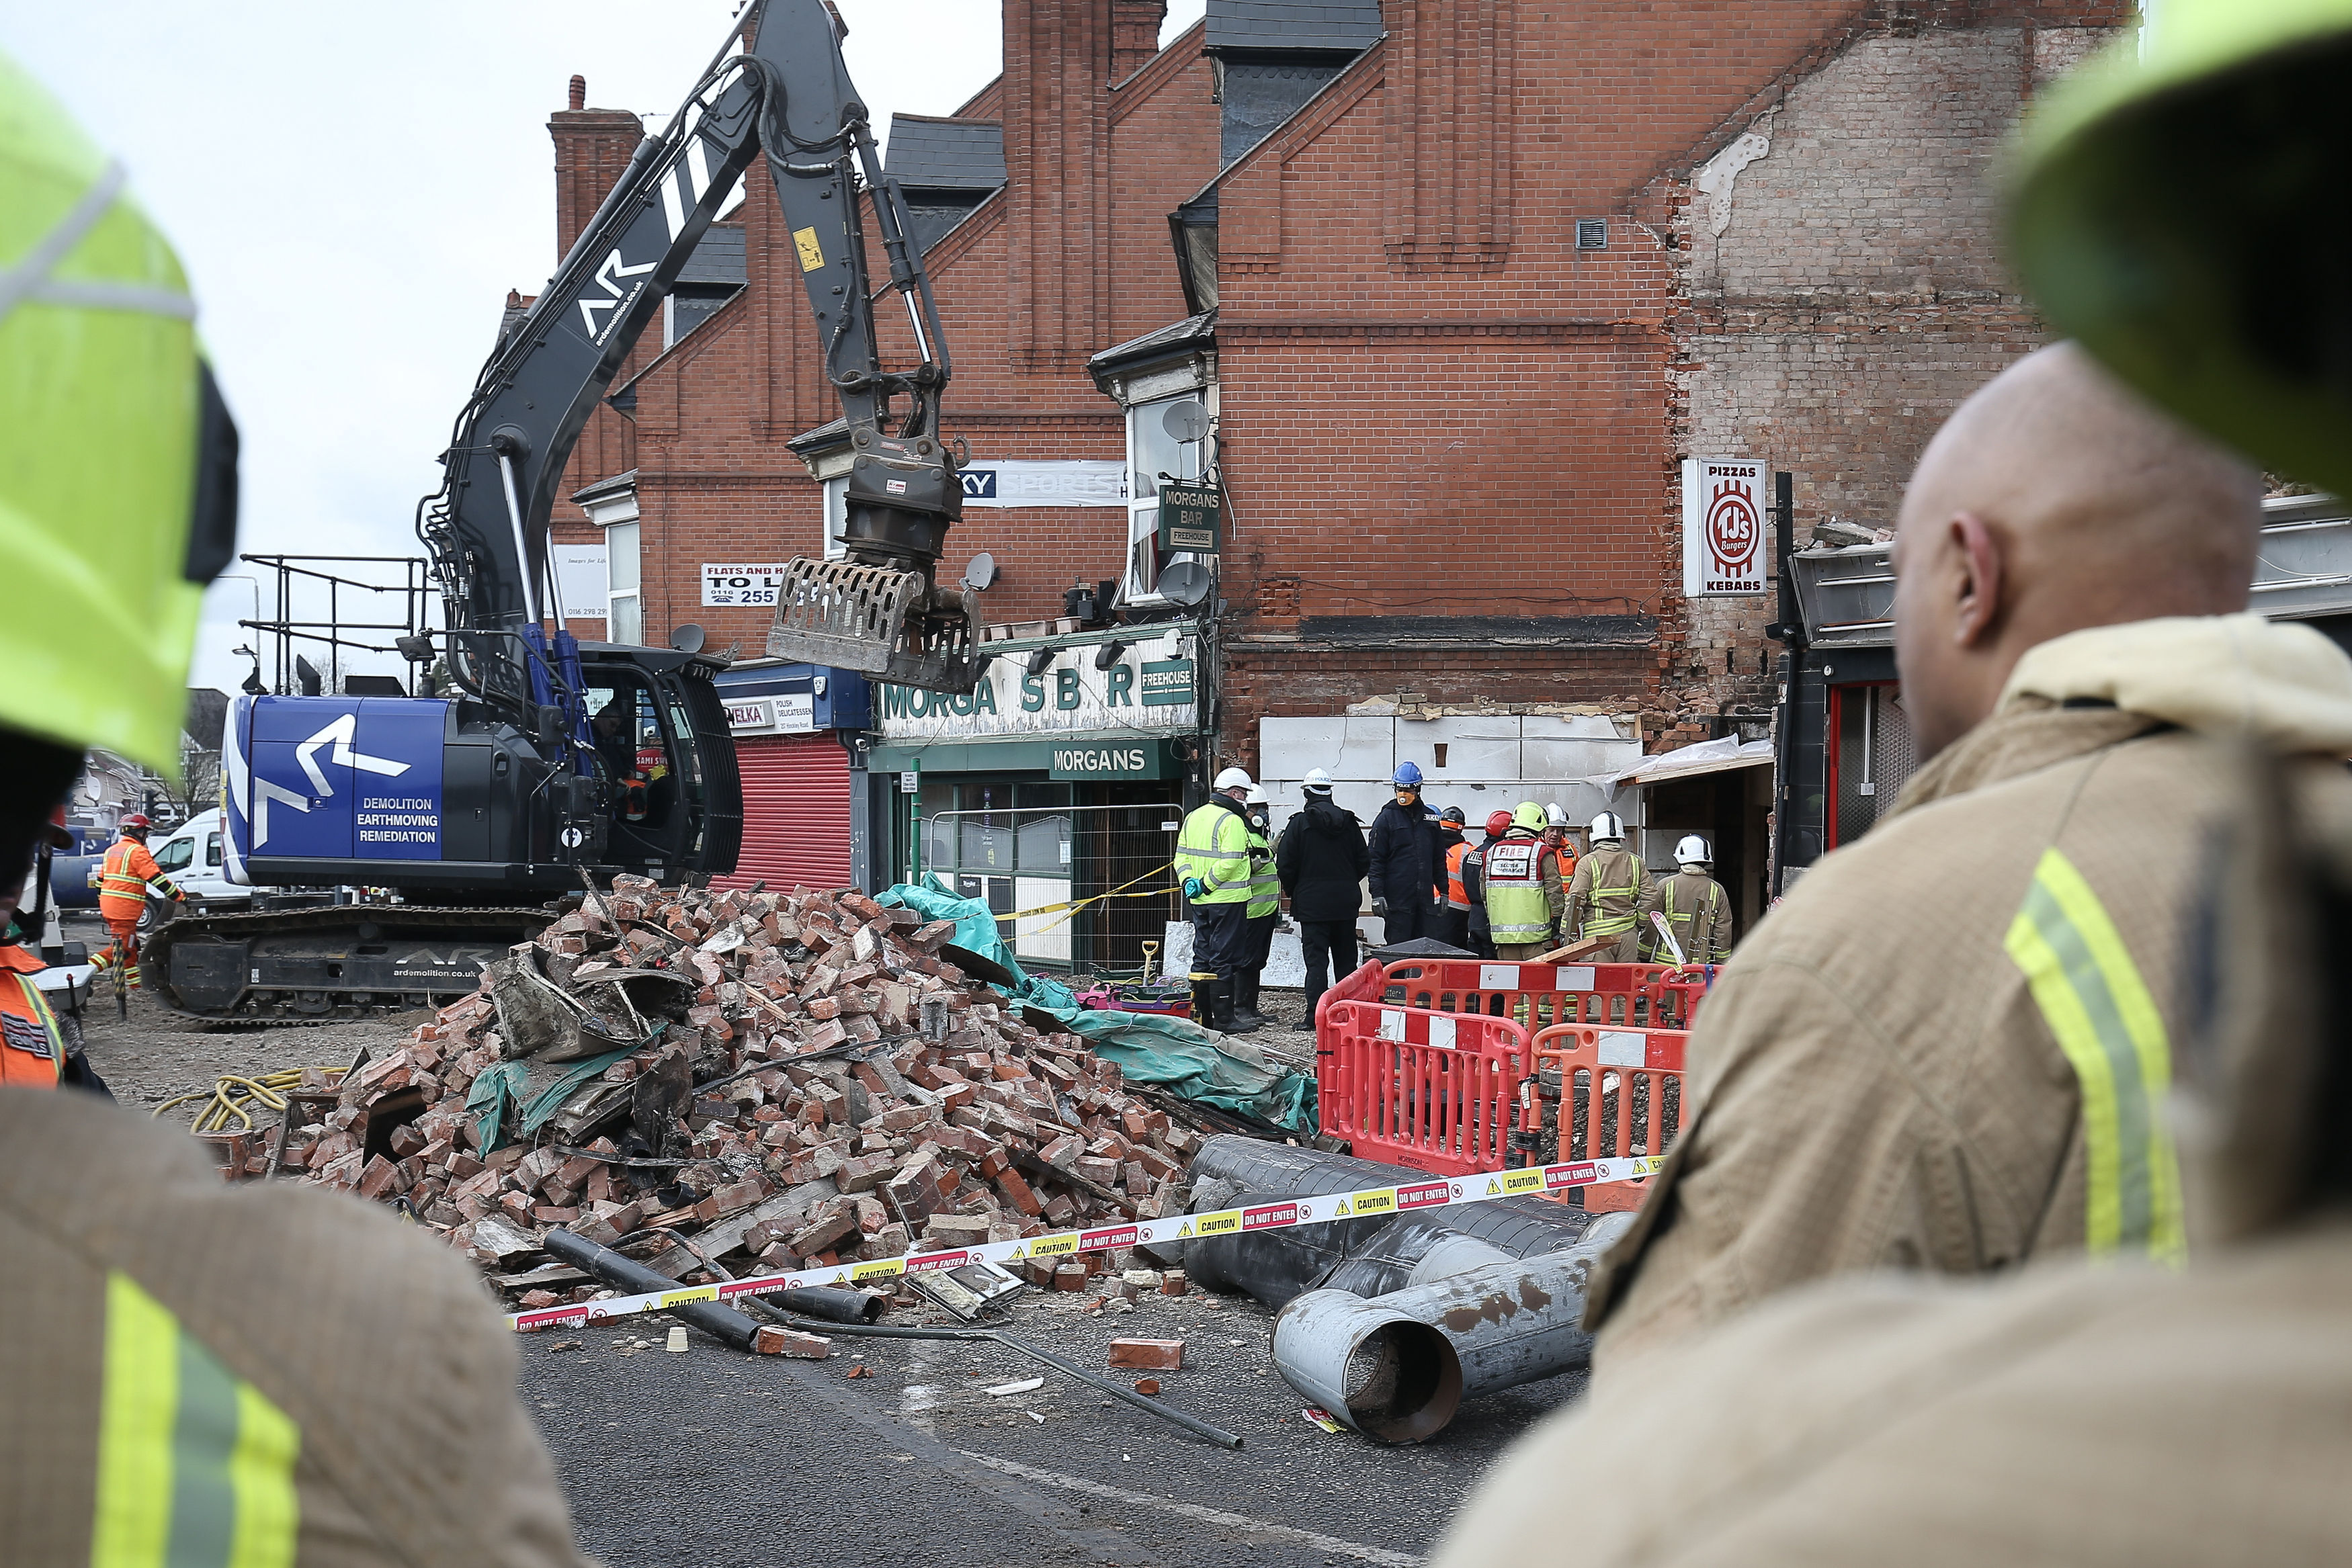 Three nabbed over deadly blast in Leicester